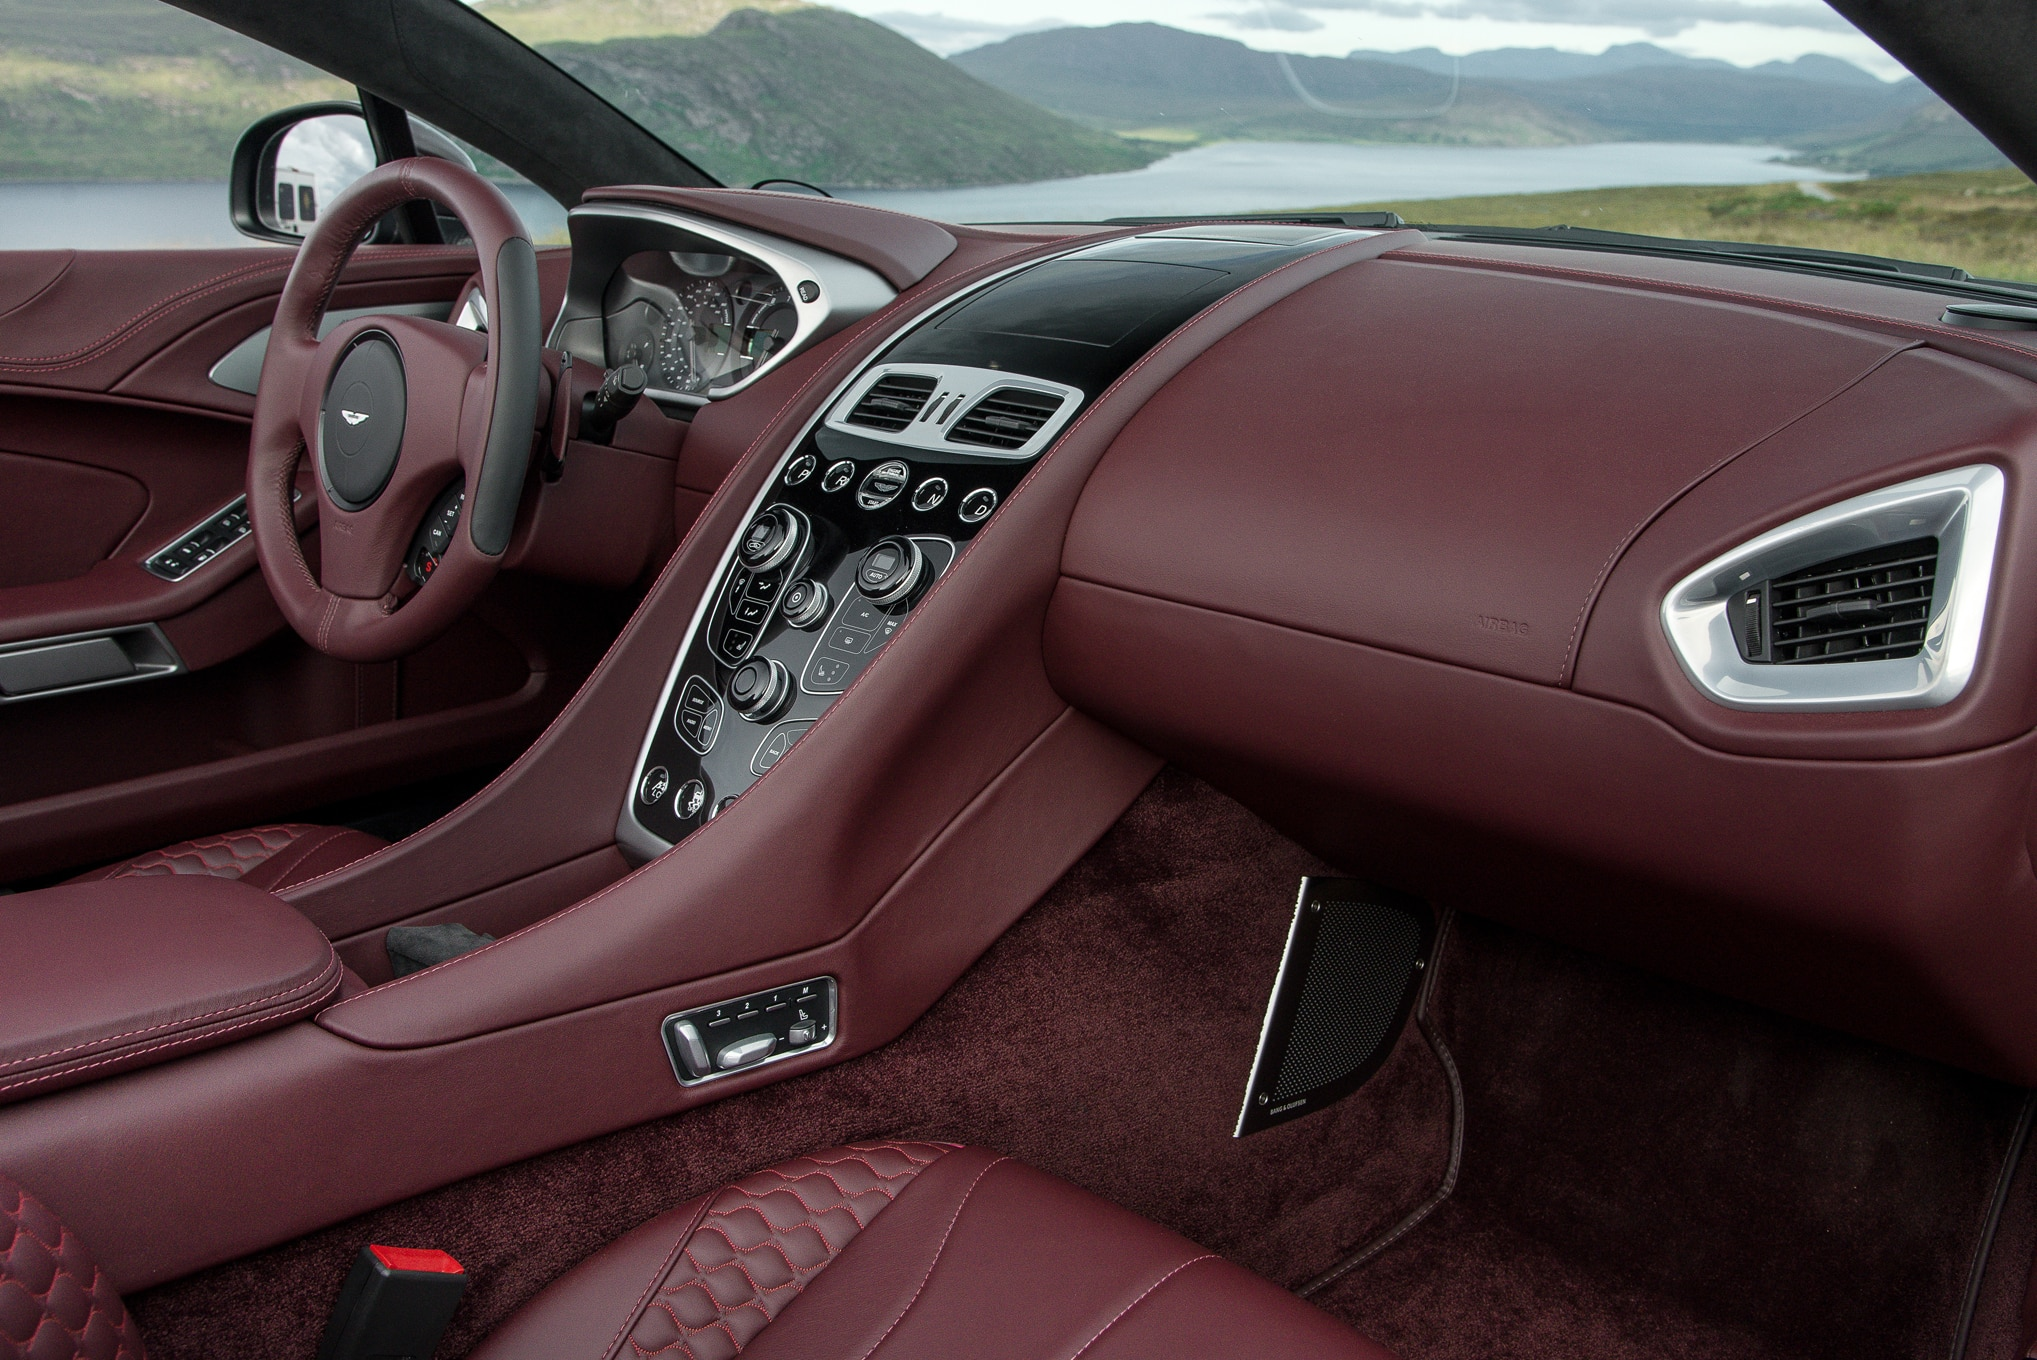 Aston martin works celebrates 60 years with limited for Aston martin db9 interior